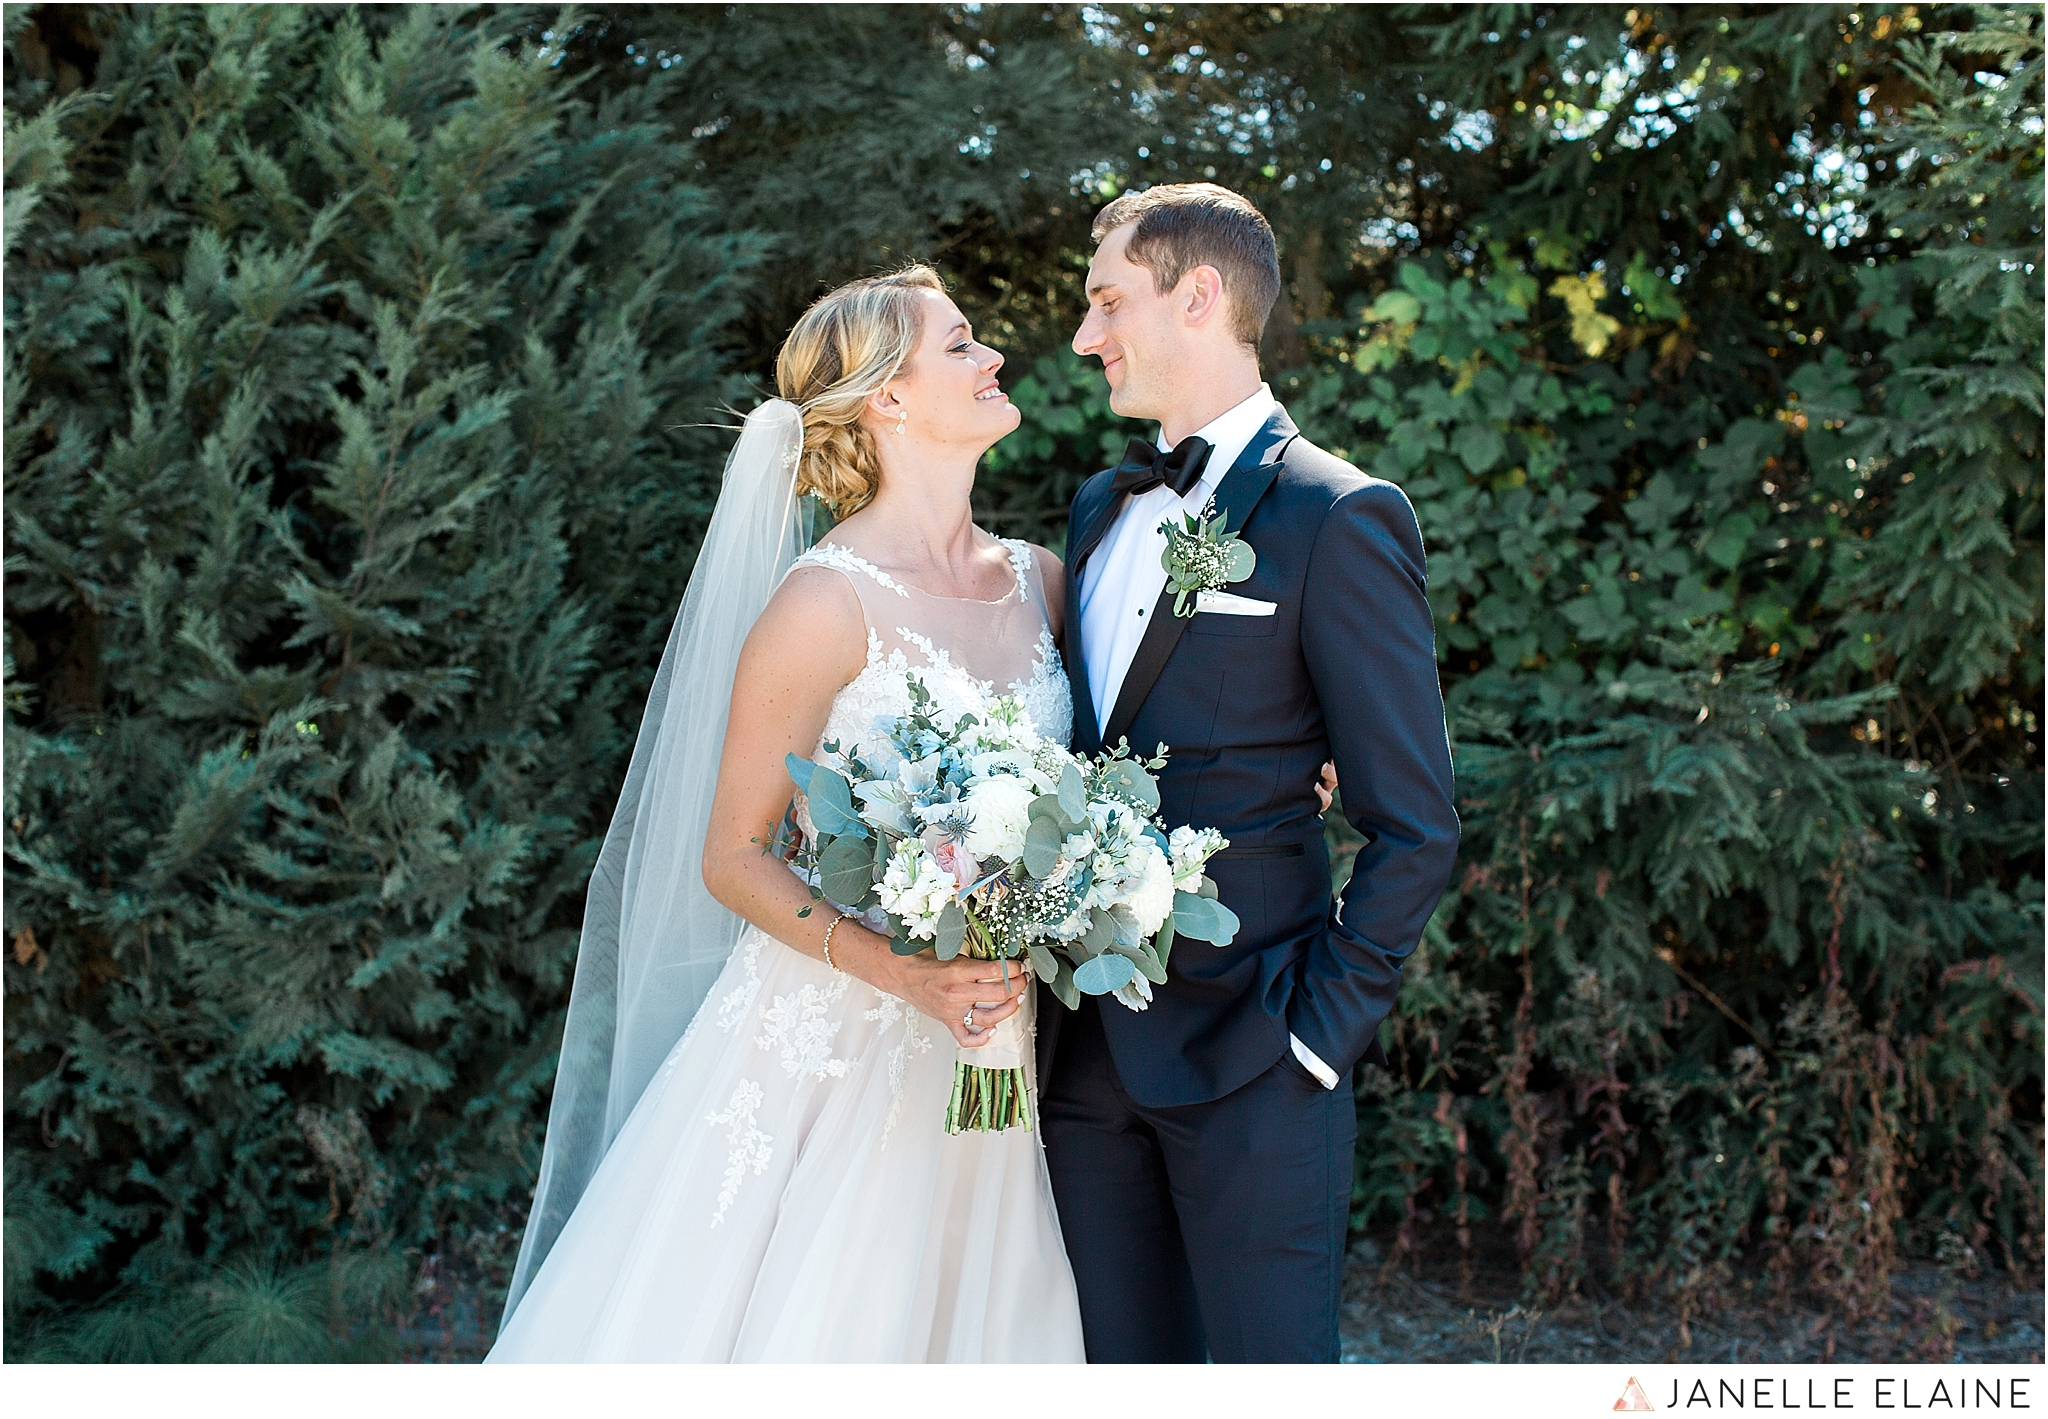 janelle elaine photography-carleton farms-washington-wedding-lake stevens-64.jpg